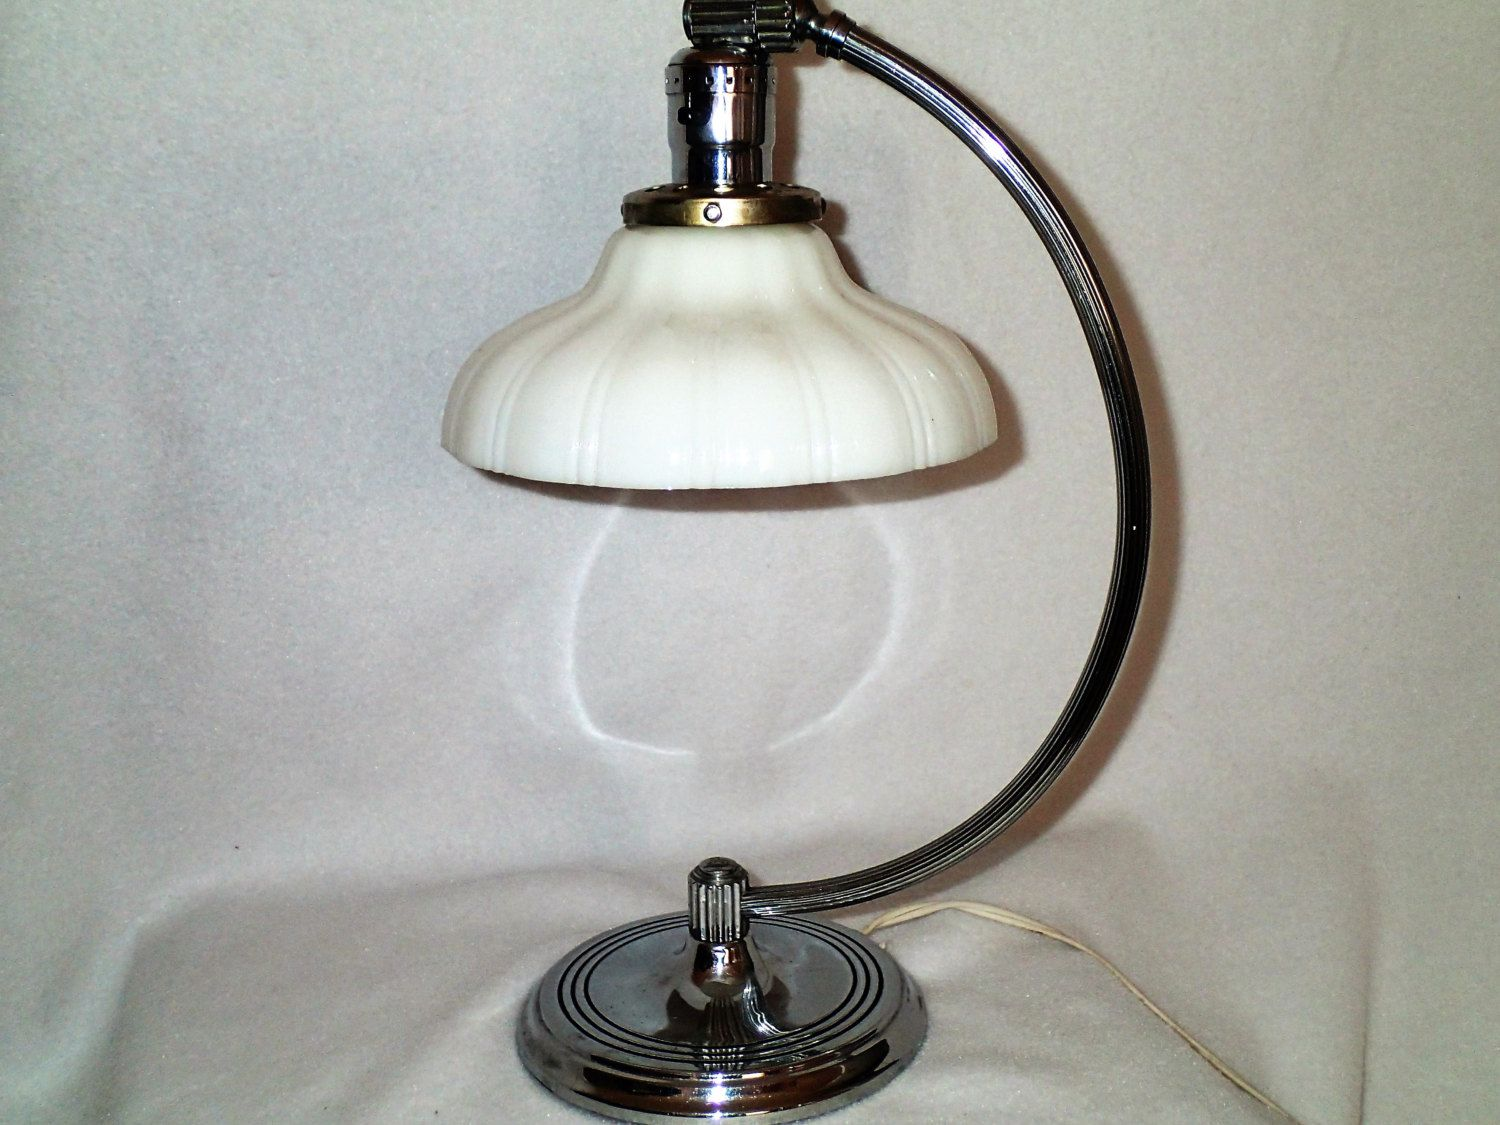 Chase Indusdtrial Age Art Deco Adjustable Chrome Desk Lamp With Ridged Milk Glass Glass Shade Vintage 1930s By Myret Adjustable Desk Lamps Antique Lamps Lamp